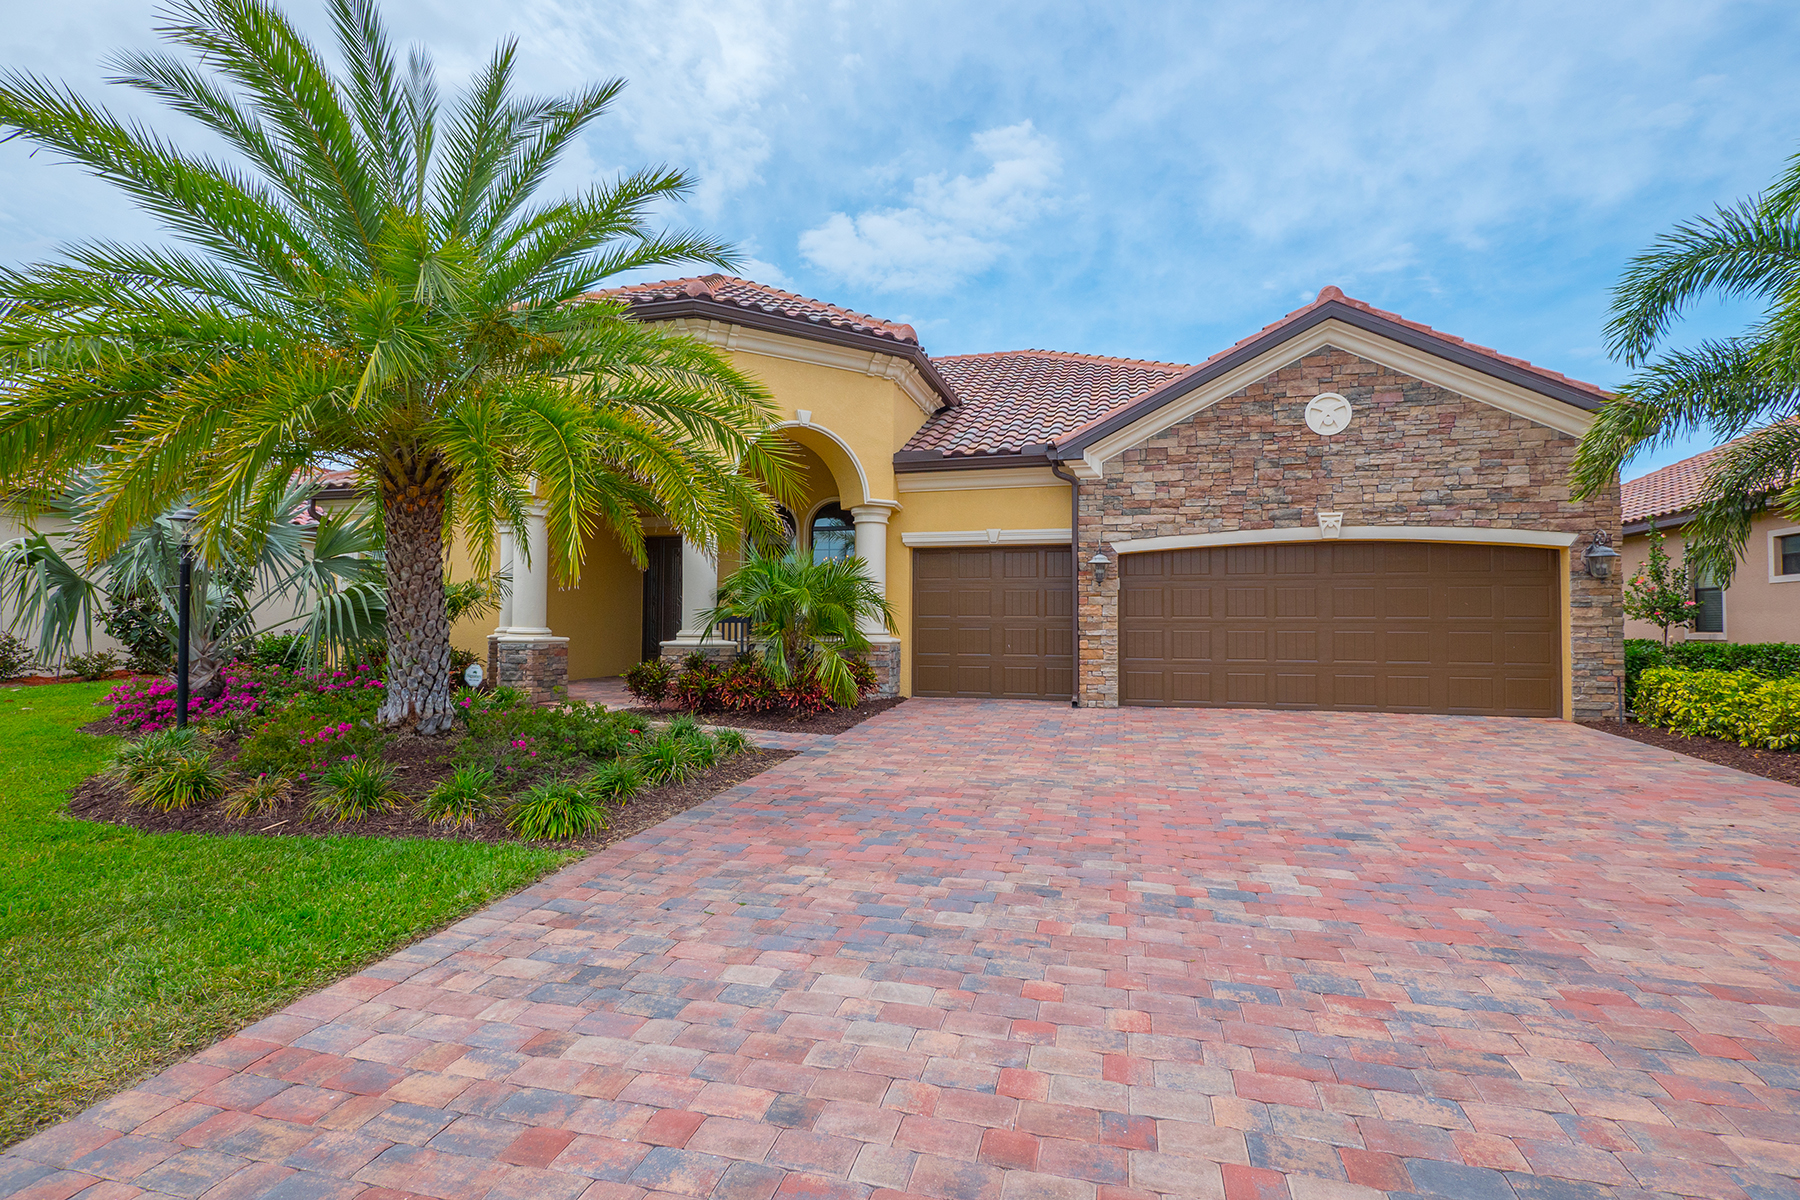 Single Family Home for Sale at LAKEWOOD RANCH - BRIDGEWATER 13127 Bridgeport Lakewood Ranch, Florida, 34211 United States